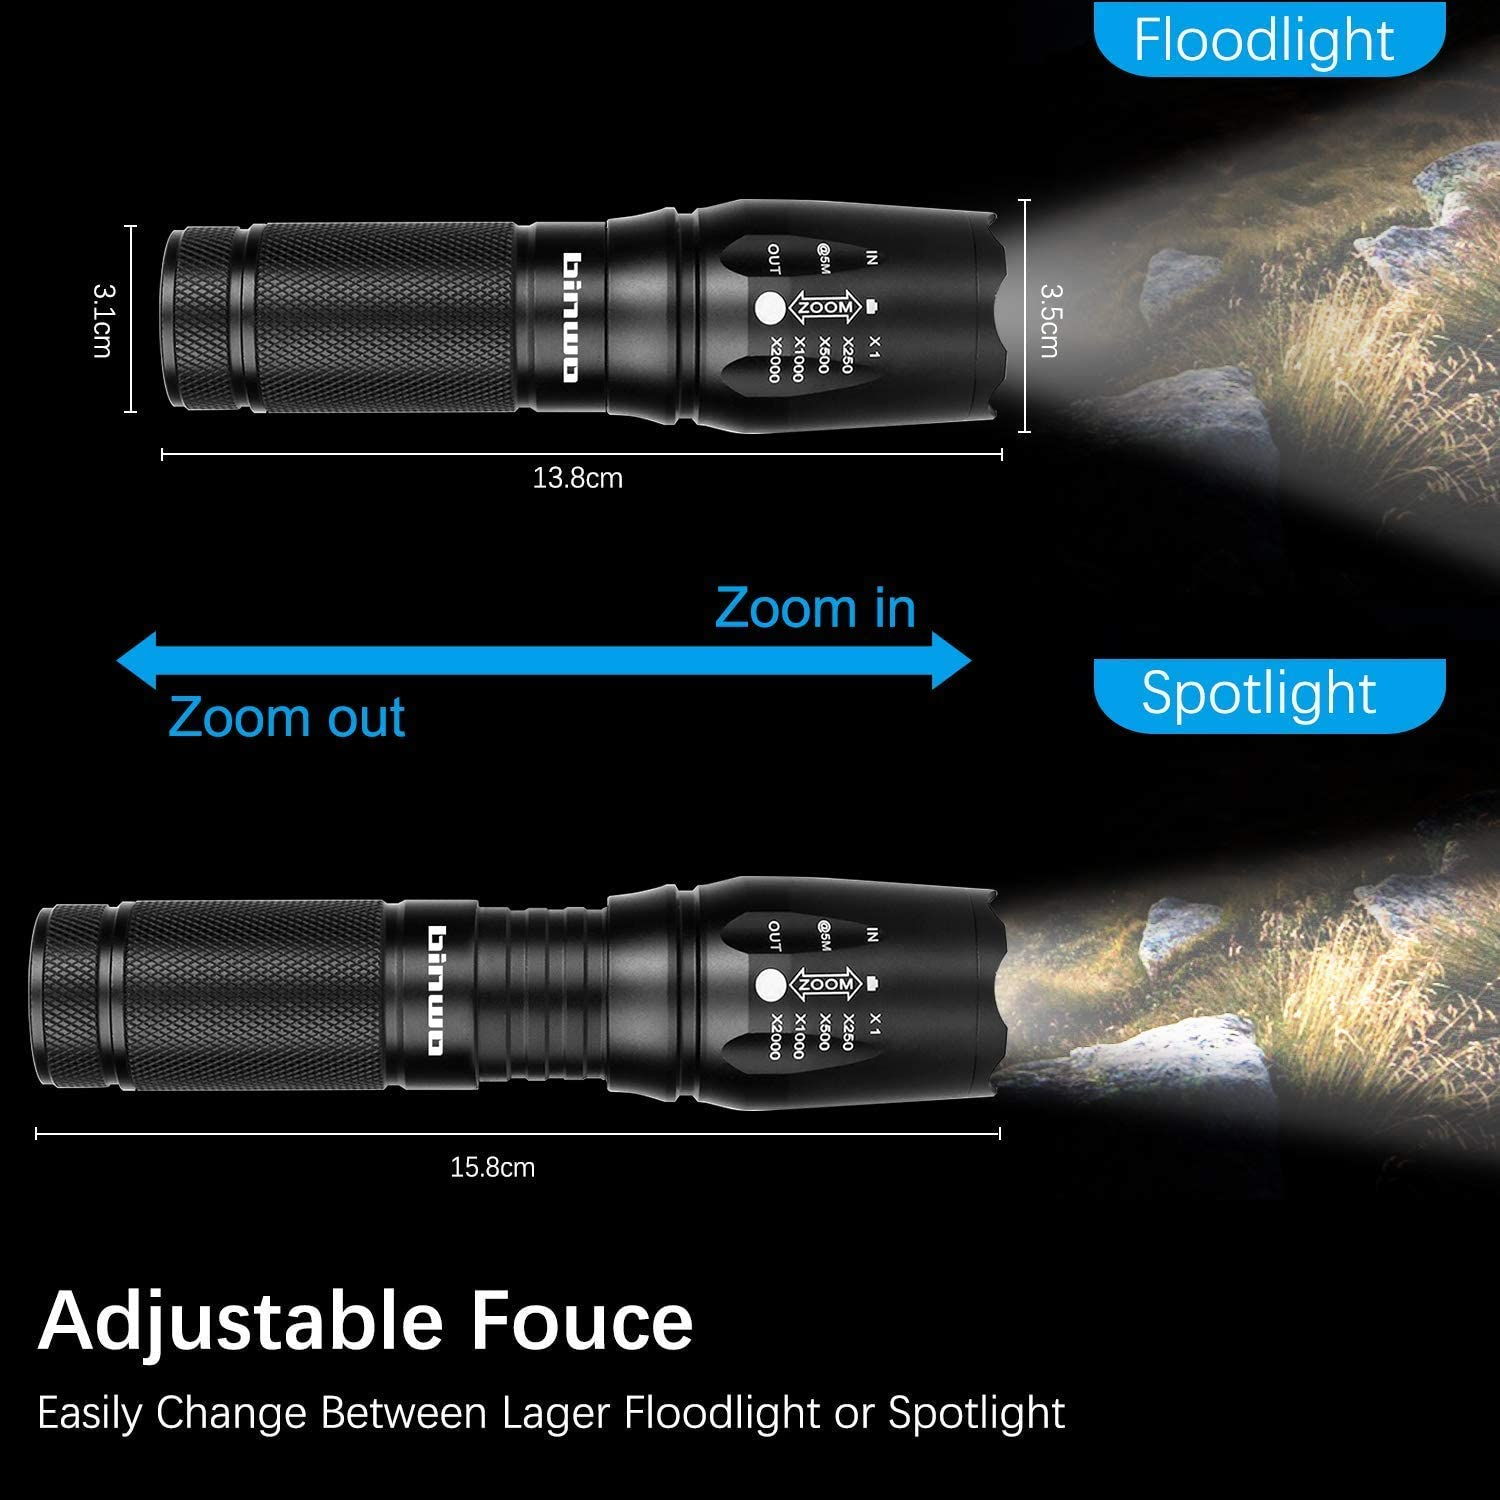 BINWO High-Powered LED Tactical Flashlight Super Bright High Lumen LED Flashlight with 5 Modes Handheld Torch Light Zoomable Outdoor Emergency or Gift Water Resistant Flash Light for Camping